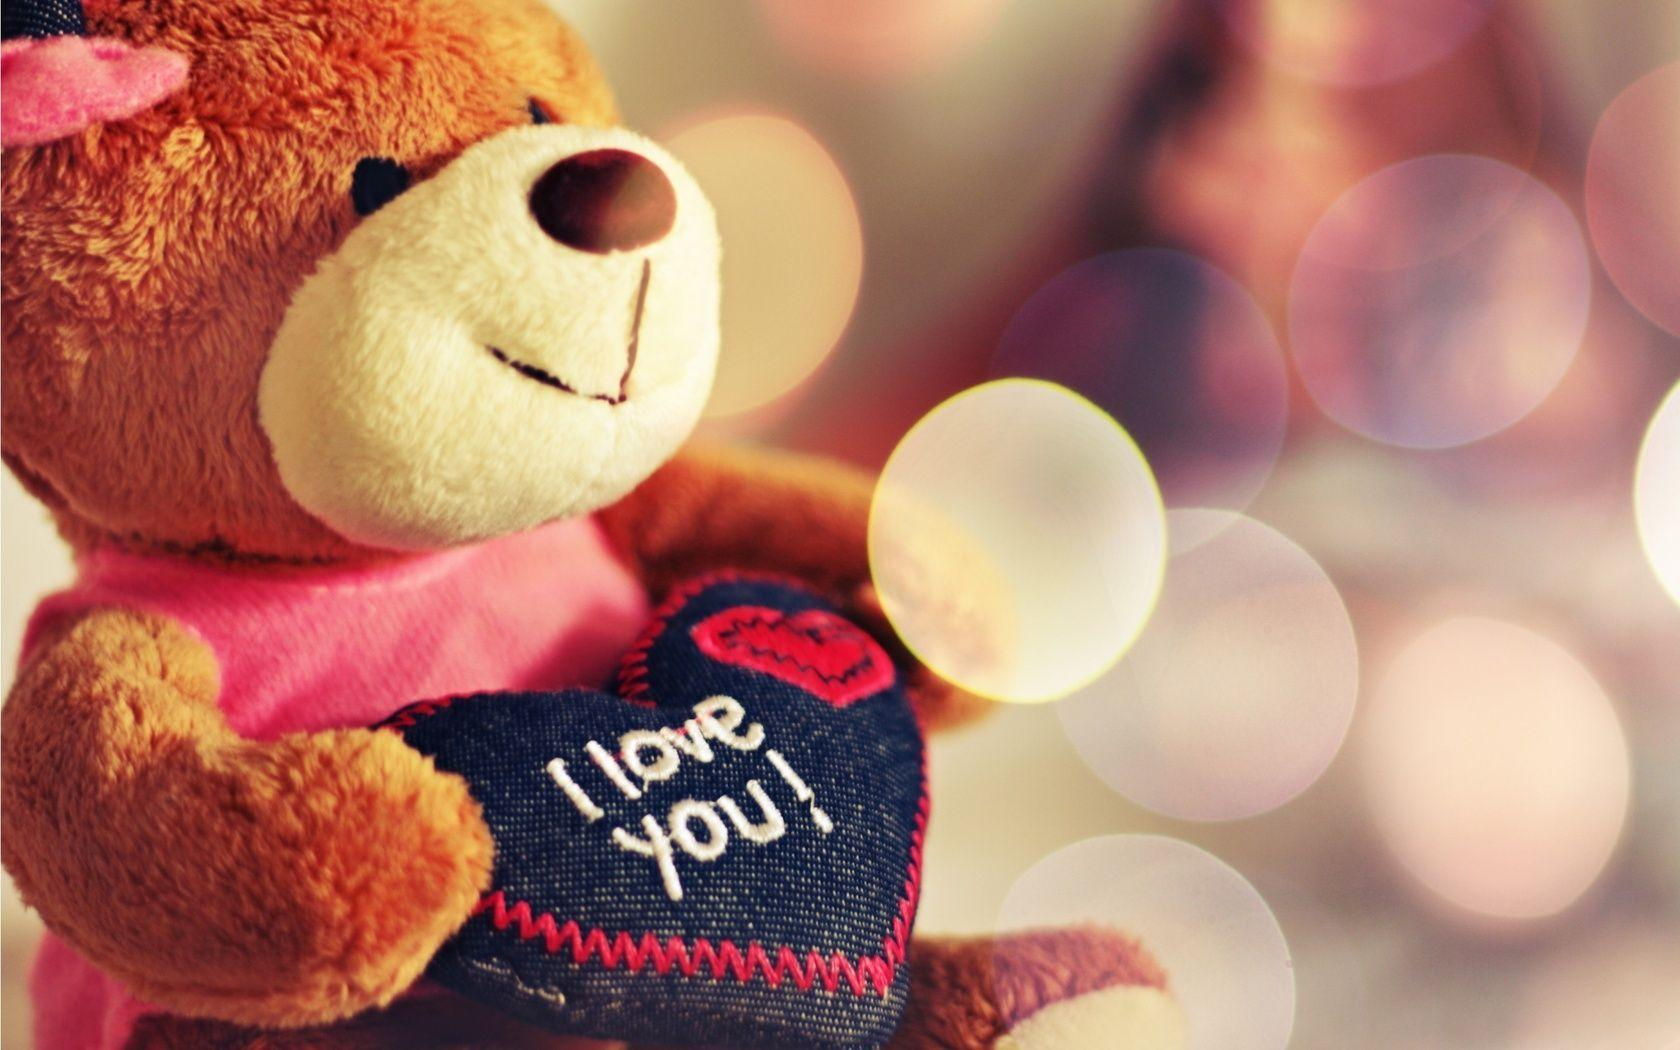 Cute Love Heart Wallpapers For Mobile Wallpaper Cave